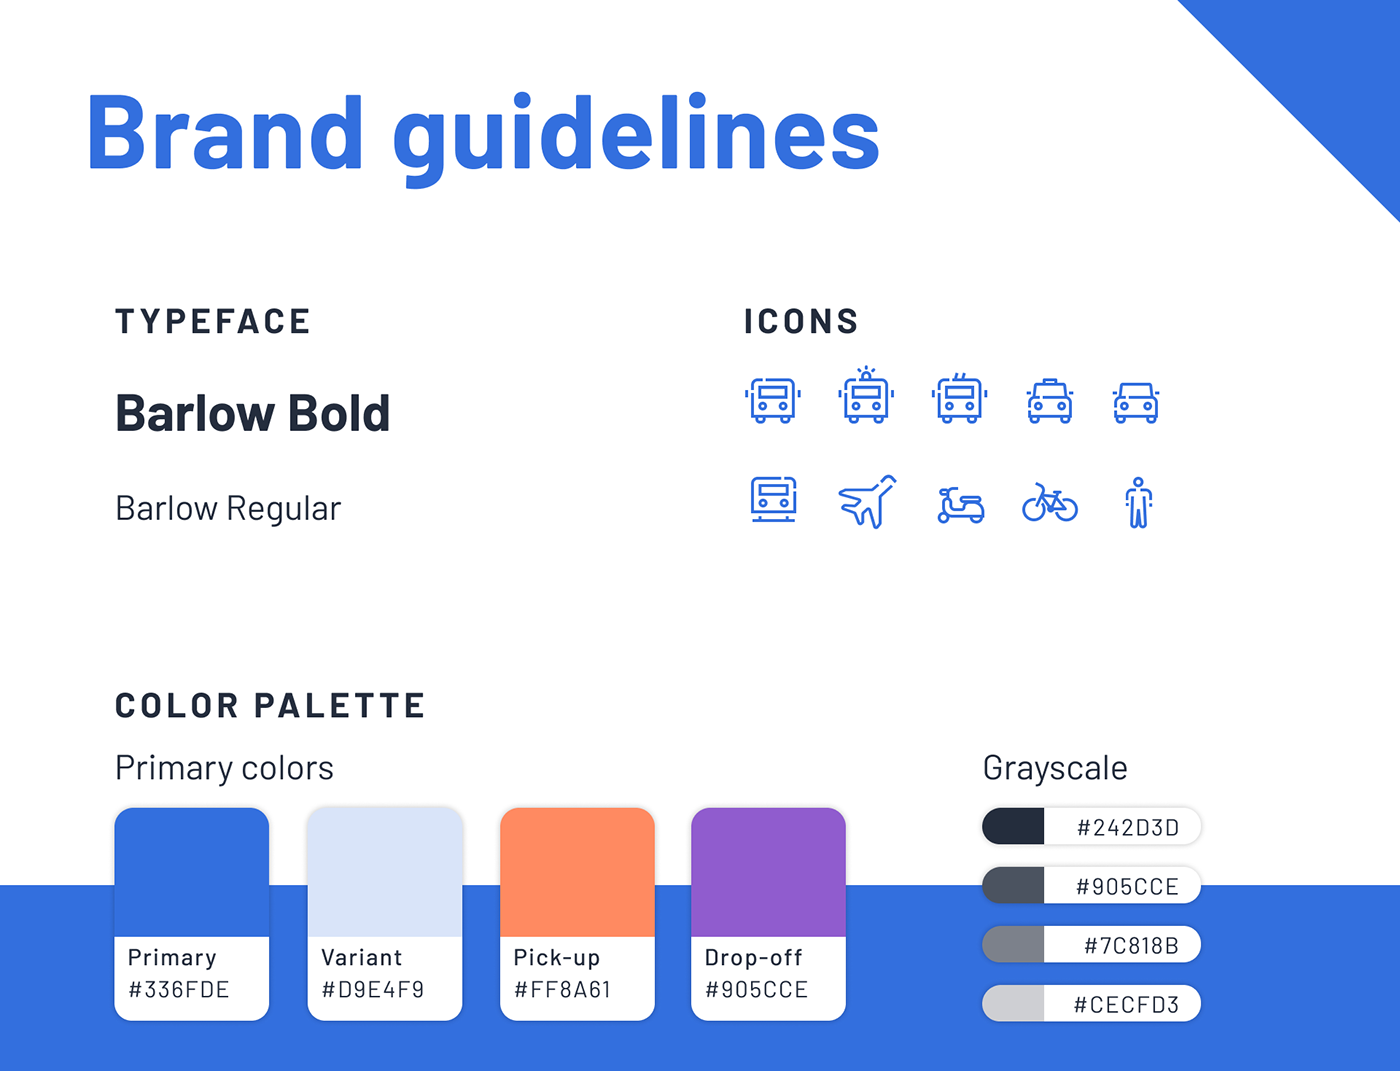 UFT - Brand guidelines : Typeface, icons, colors